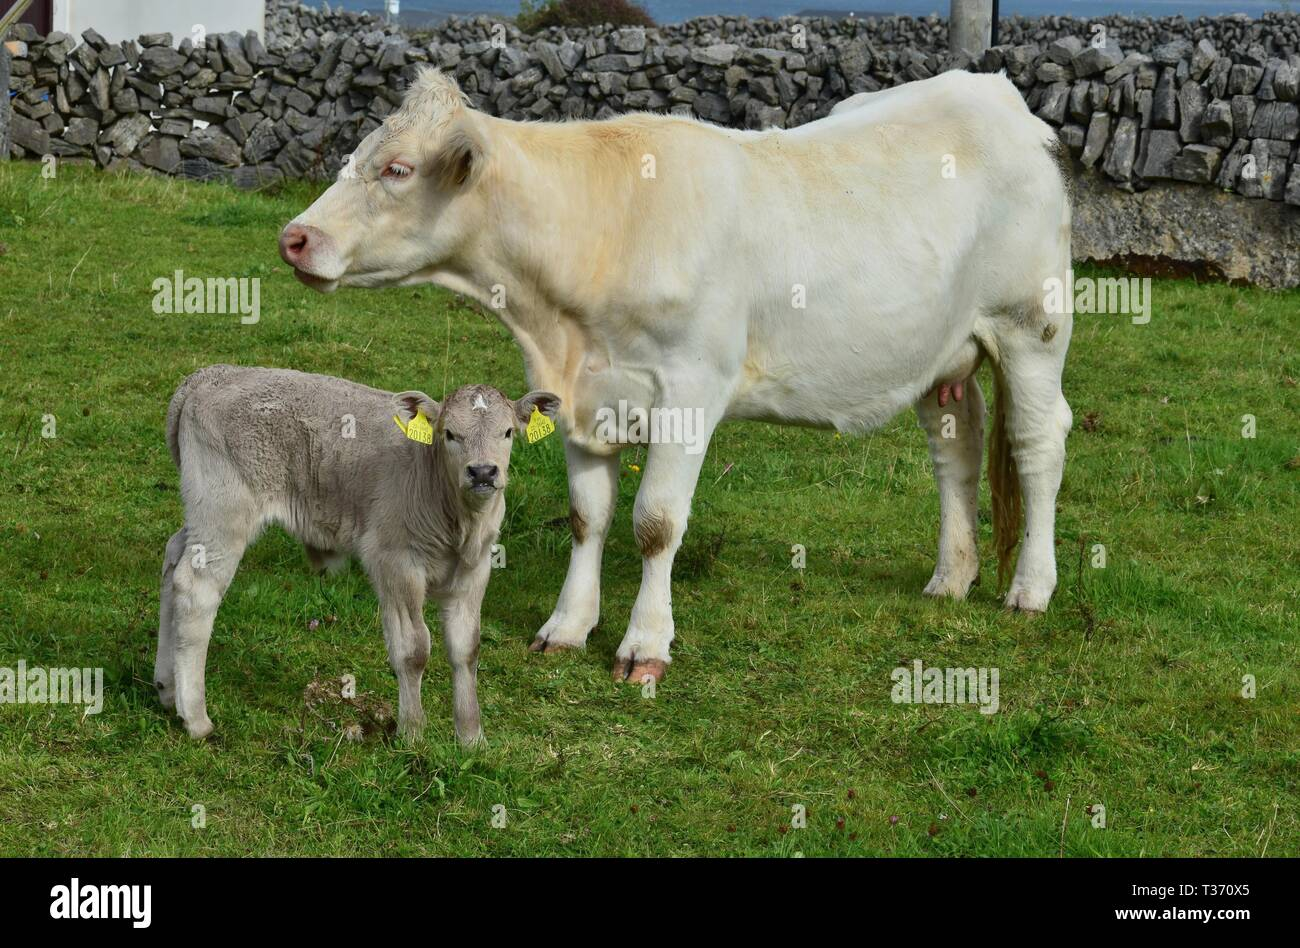 A young calf, a few days old, and its mother on a meadow in Ireland. The dried umbilical cord is still to be seen. - Stock Image